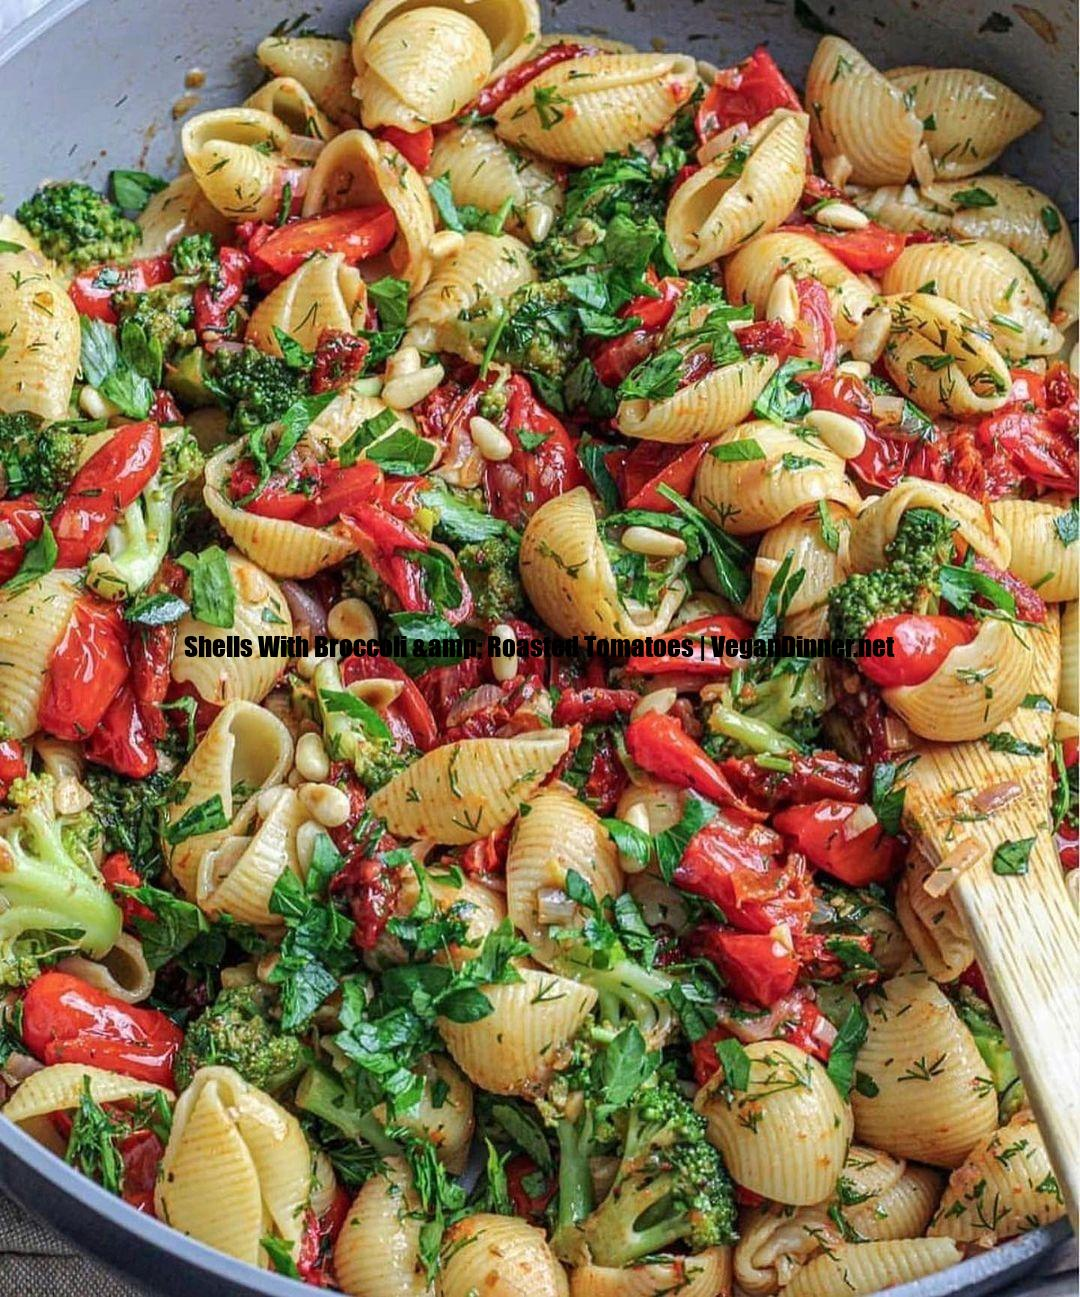 shells with broccoli & roasted tomatoes display image cce